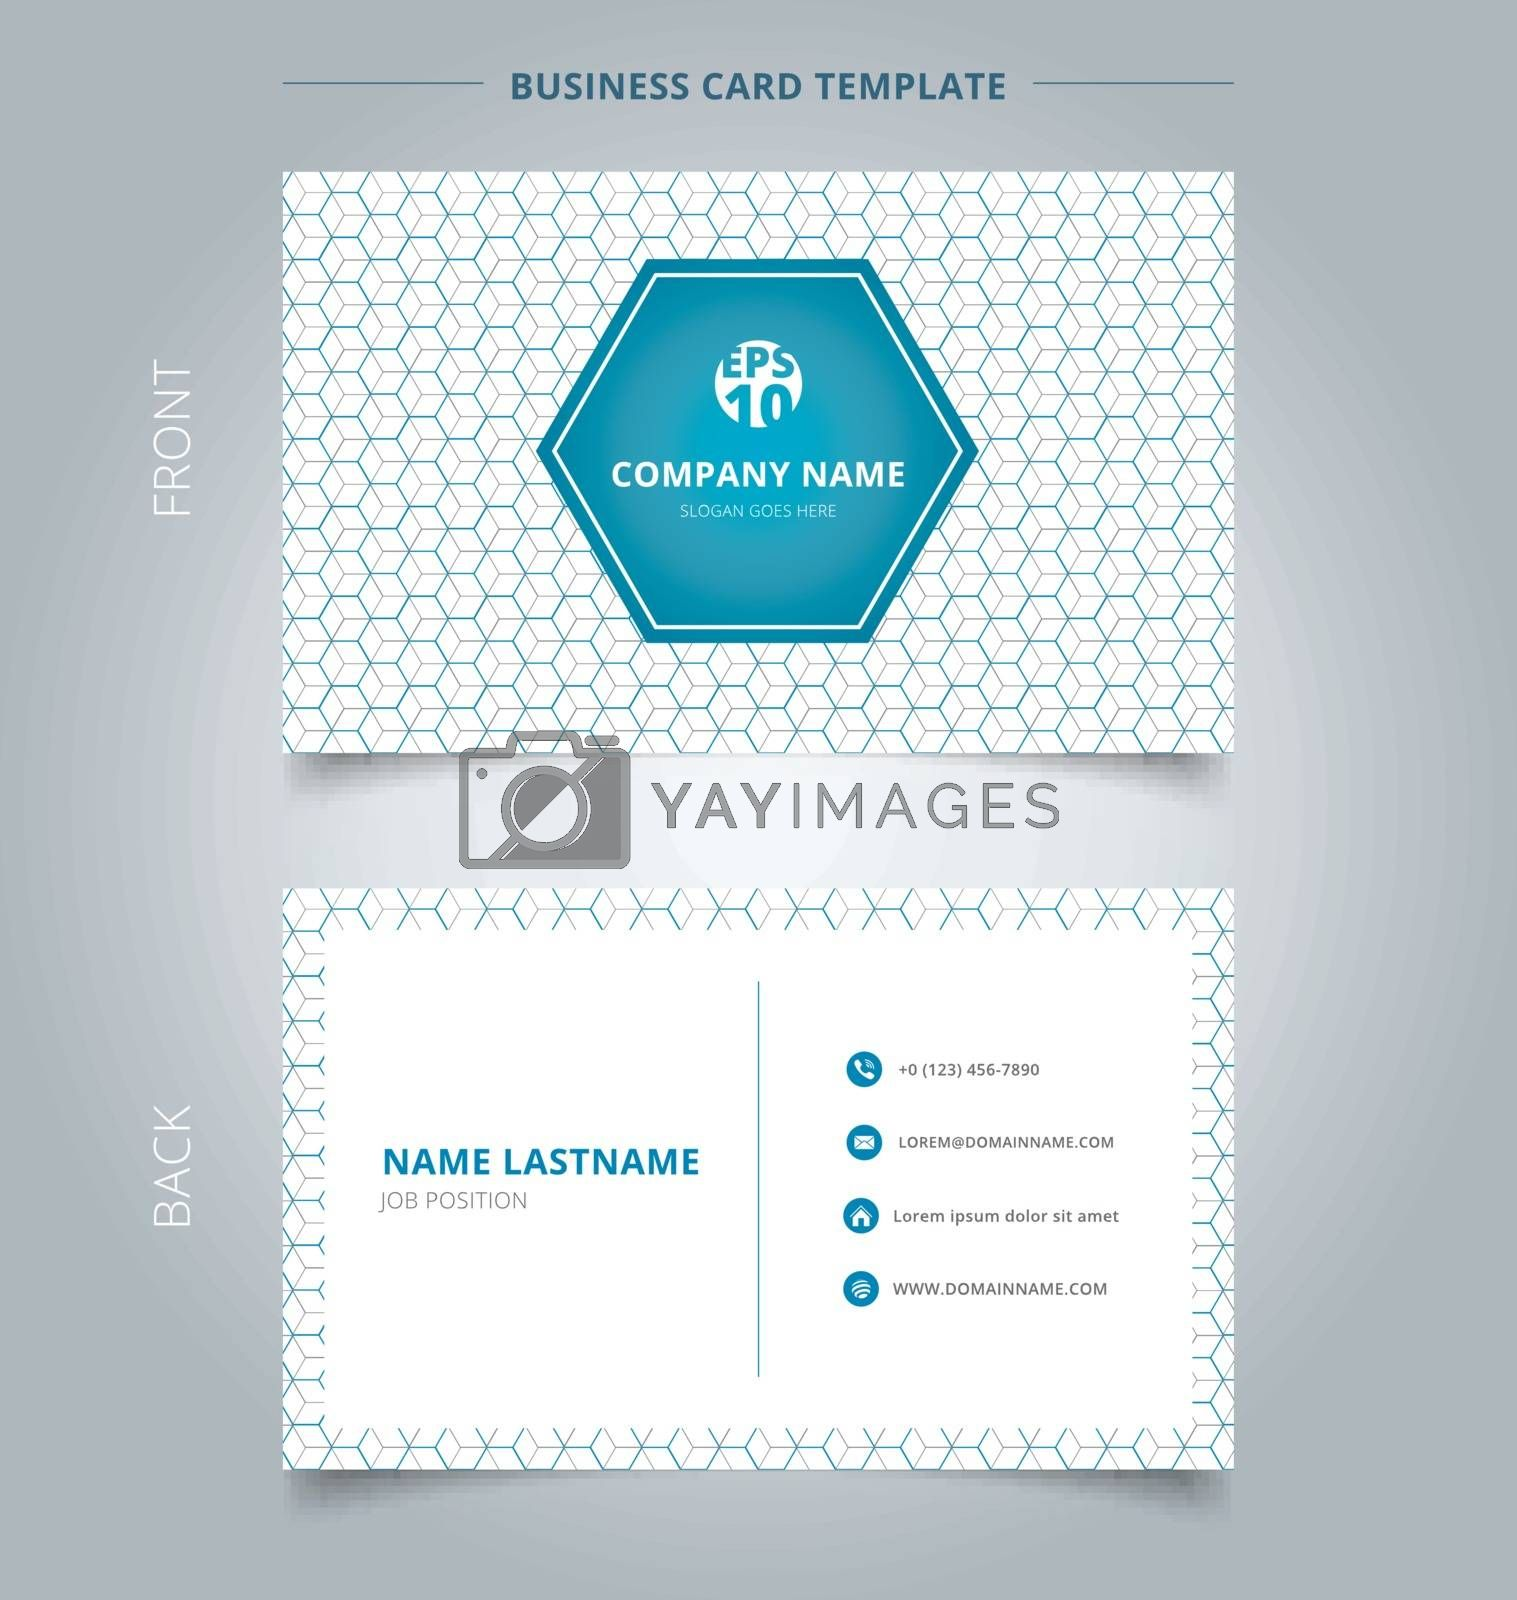 Creative business card and name card template geometric blue, gray hexagon pattern overlap background. Abstract concept and commercial design. vector graphic illustration